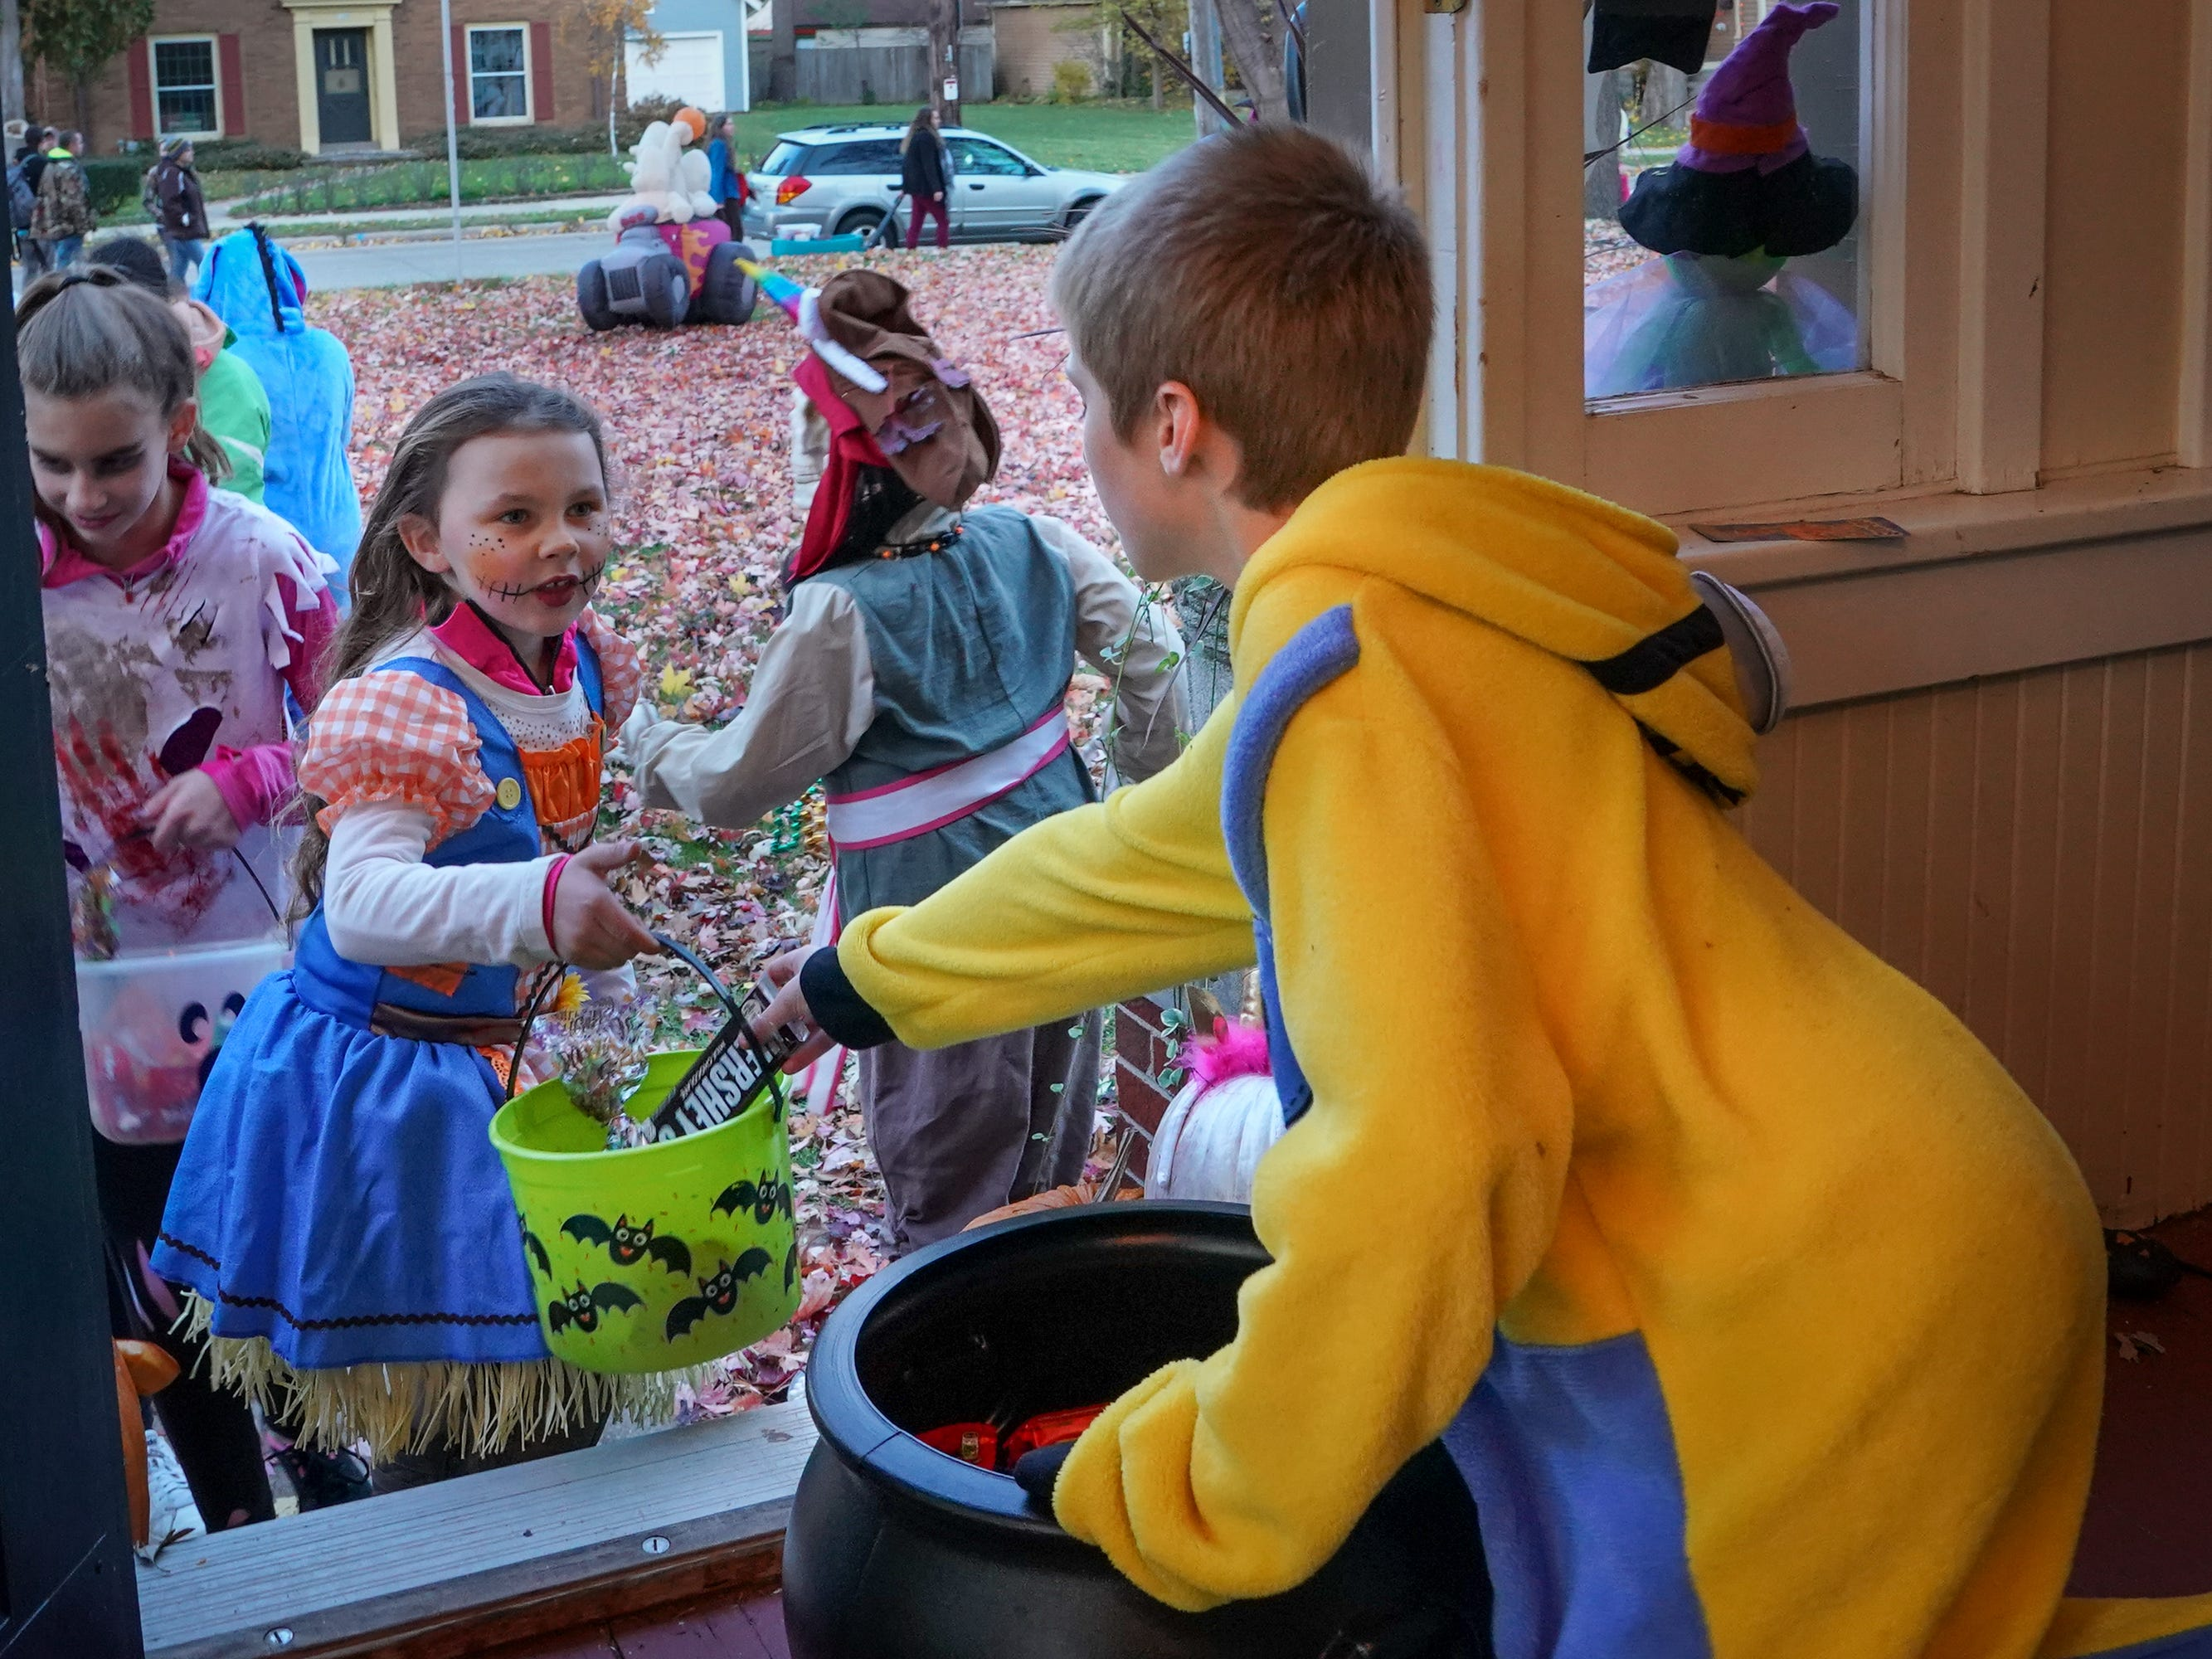 Titus Schroeder hands out candy to a group of trick or treaters. Children, along with their parents, made the most of the beautiful autumn weather to trick or treat in Oshkosh Wednesday evening.